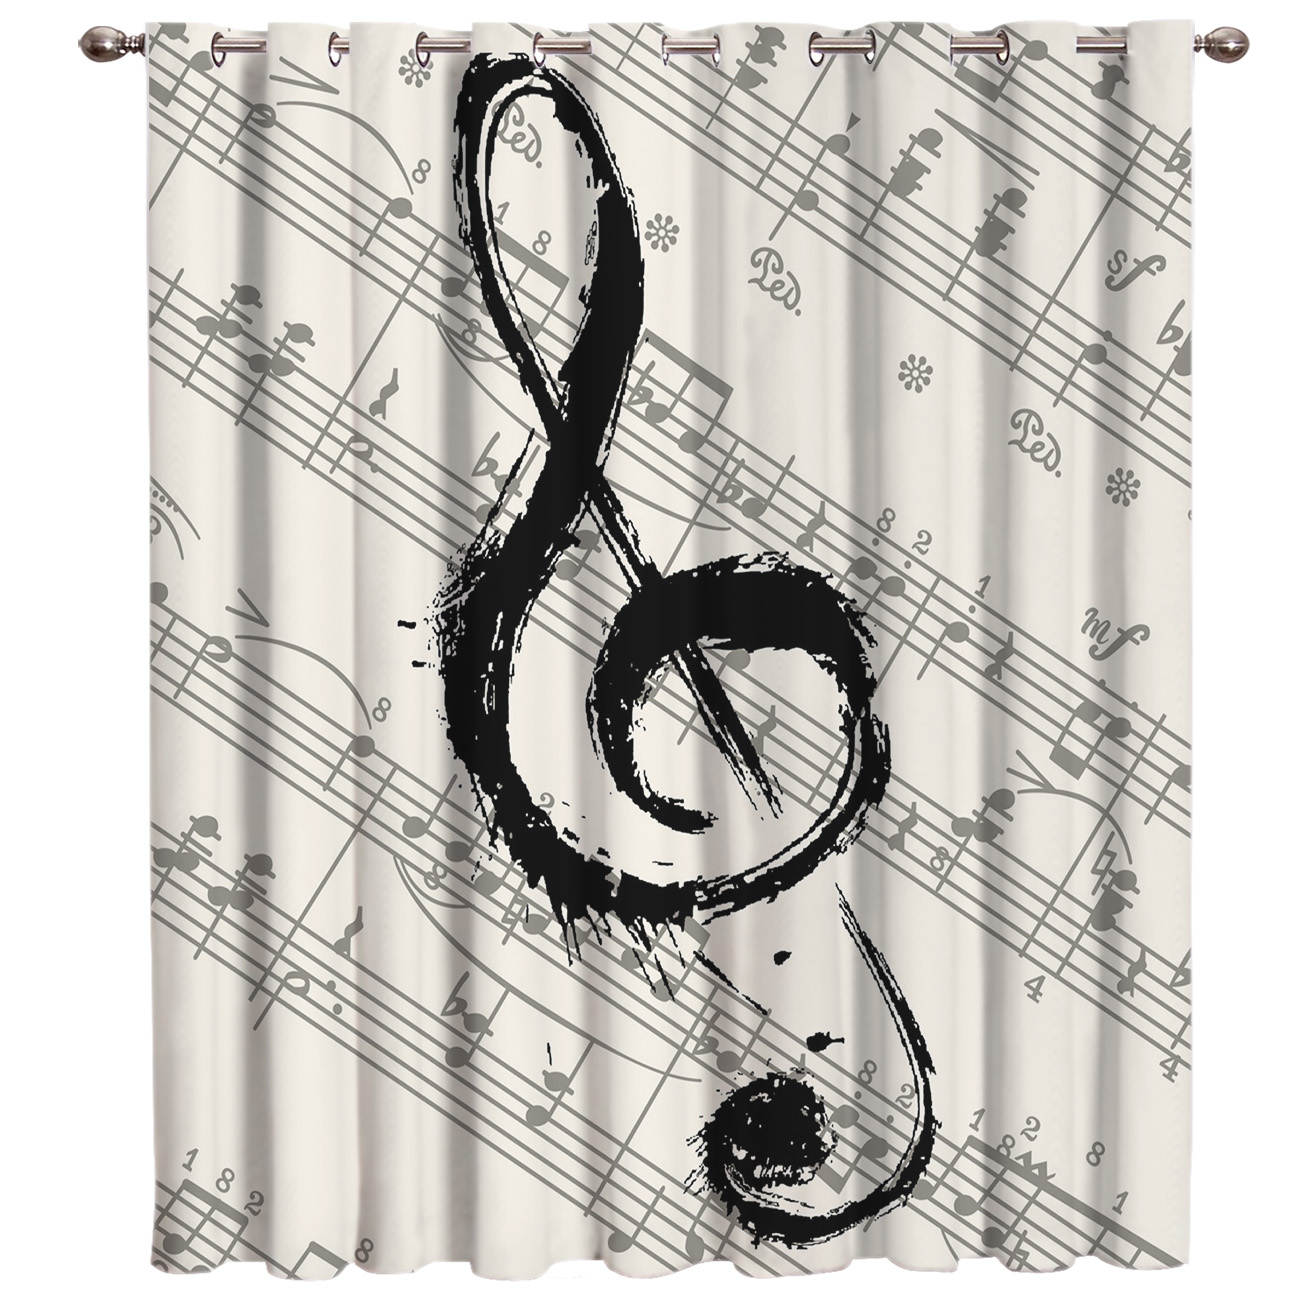 Music Notes Sheet Blackout Window Curtains Dark Living Room Curtain Rod Kitchen Drapes Fabric Indoor